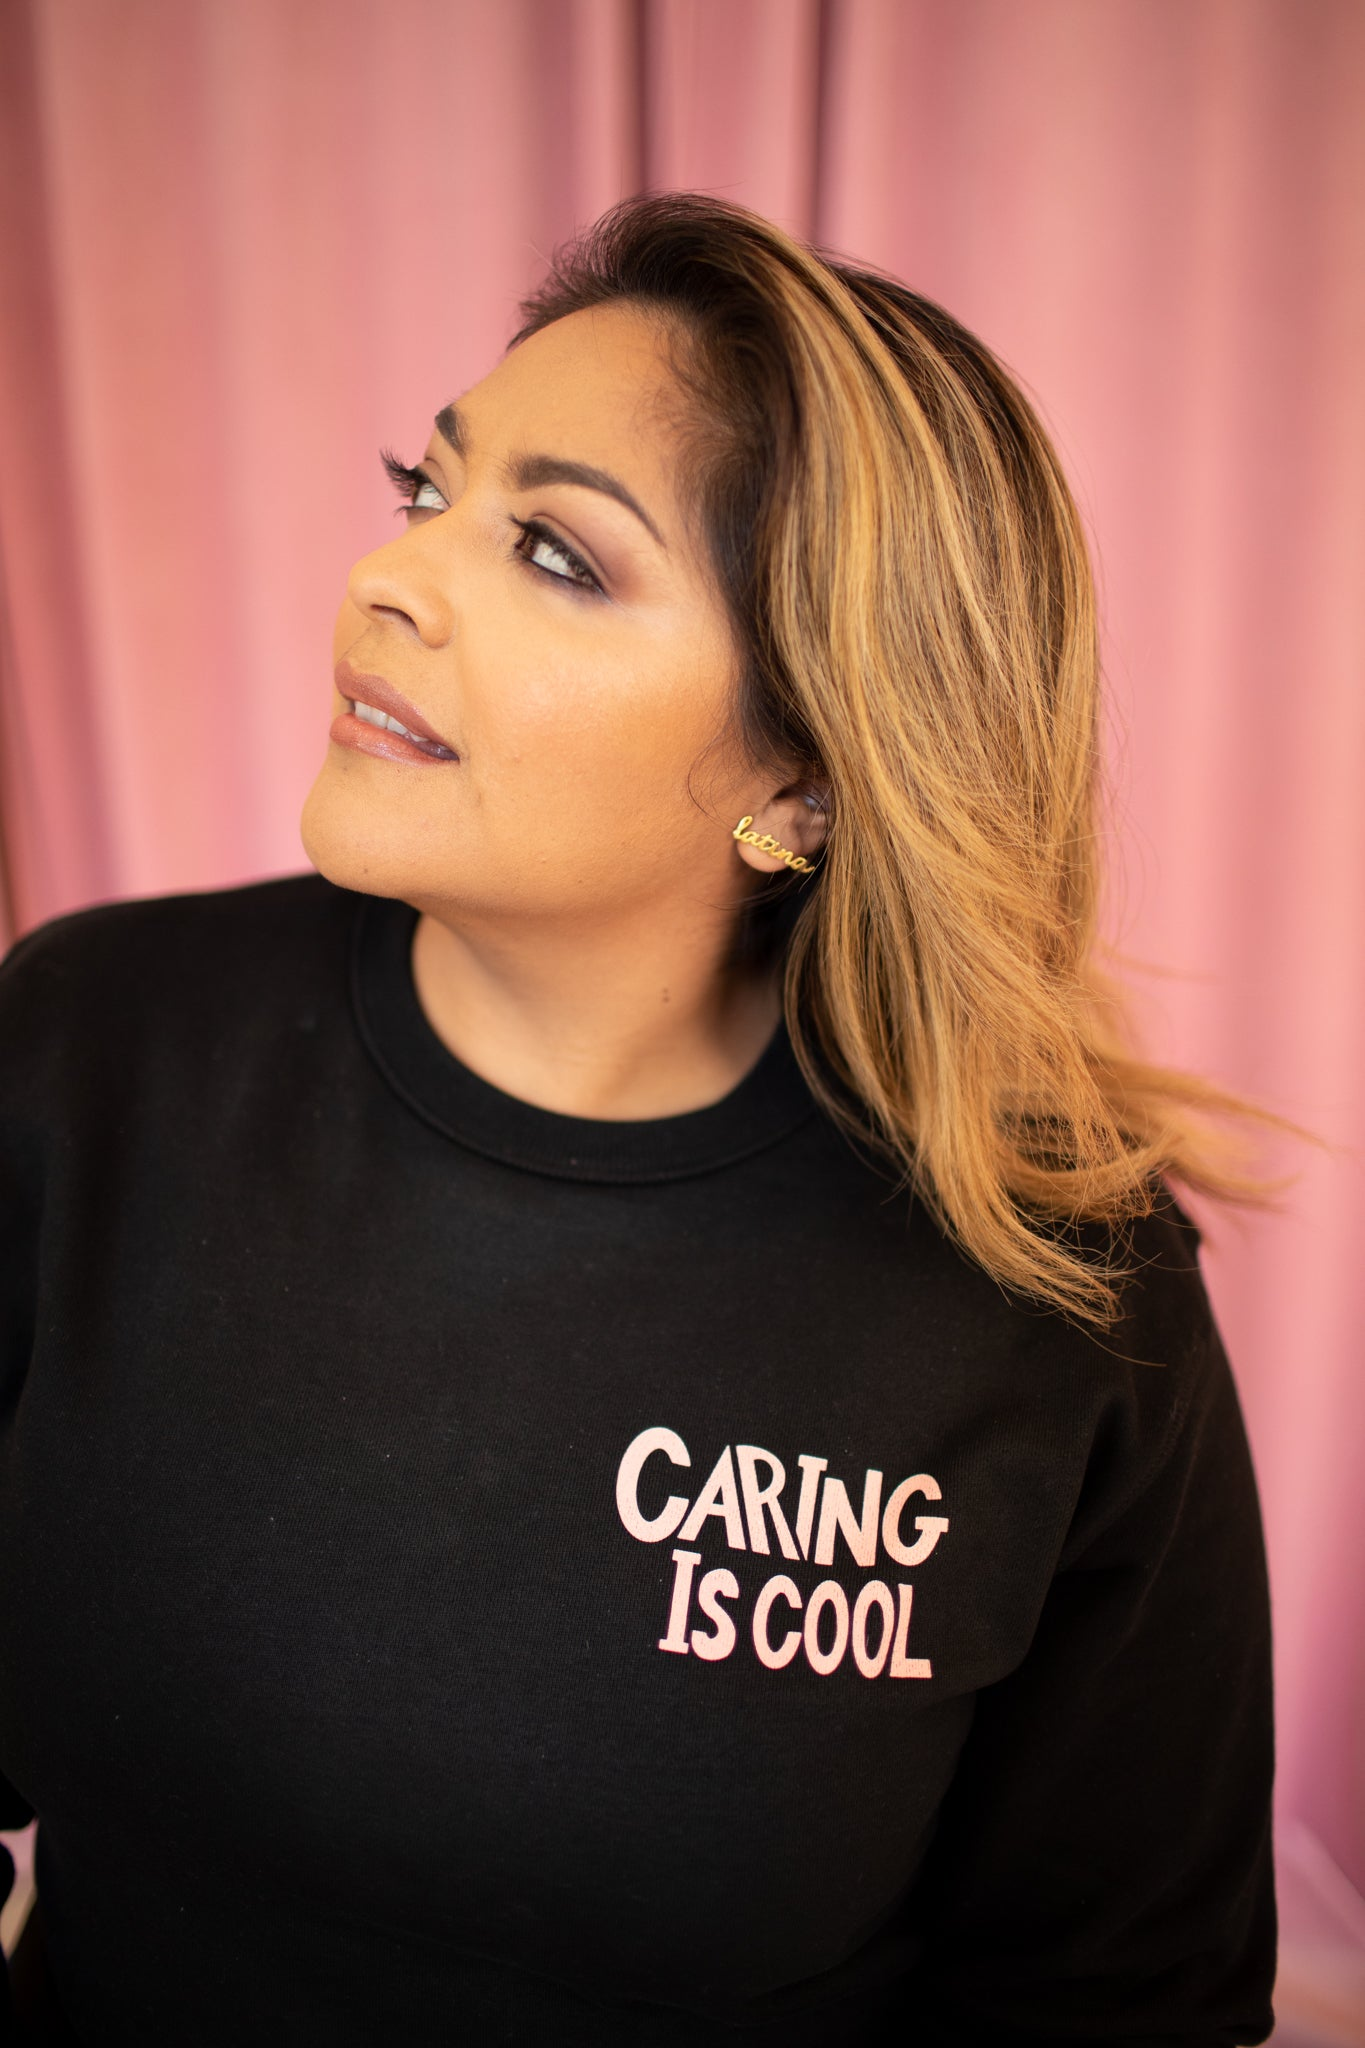 Caring Is Cool/ I'm With Them Sweatshirt